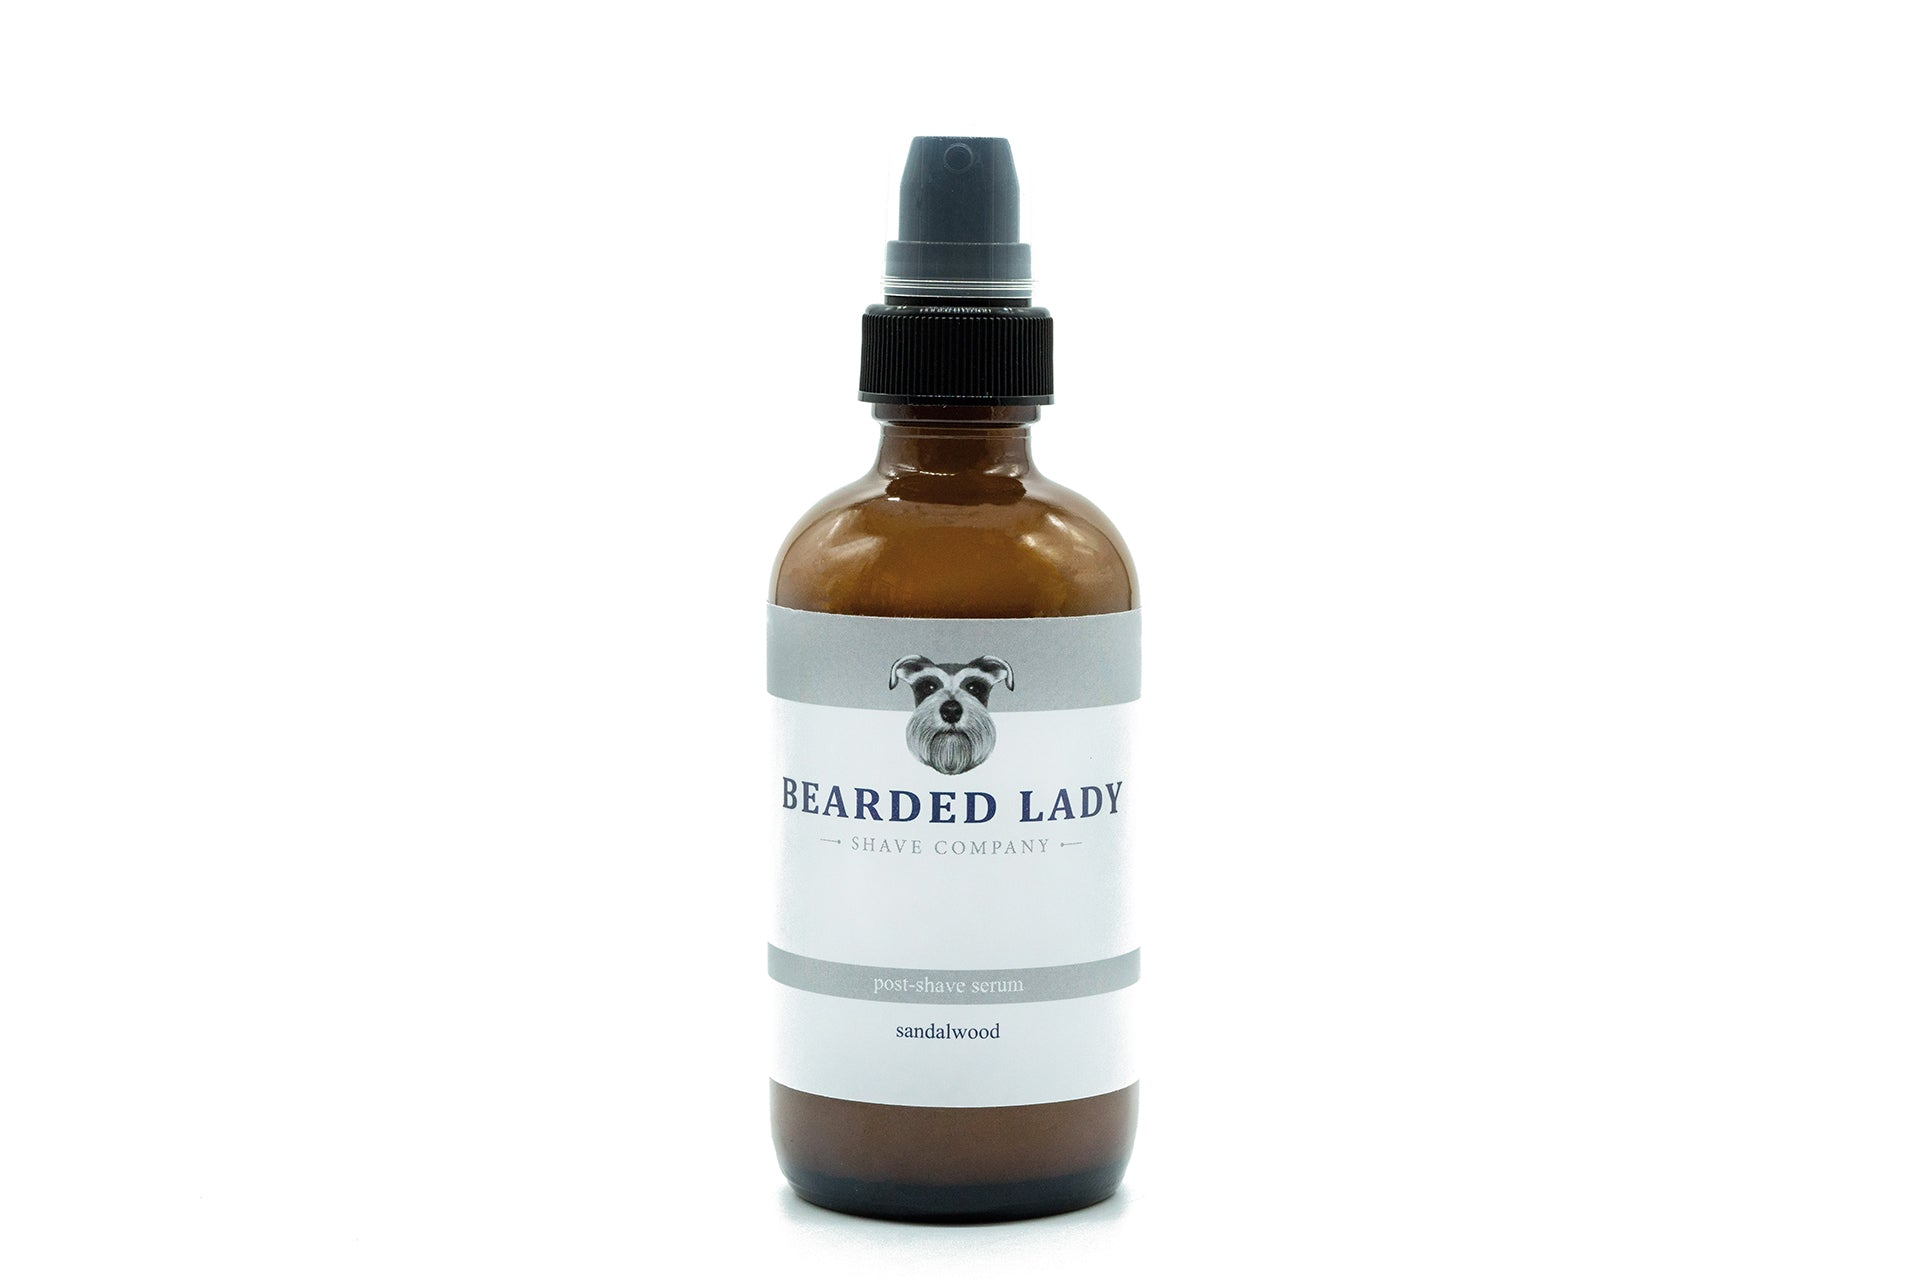 Post Shave Serum: Sandalwood